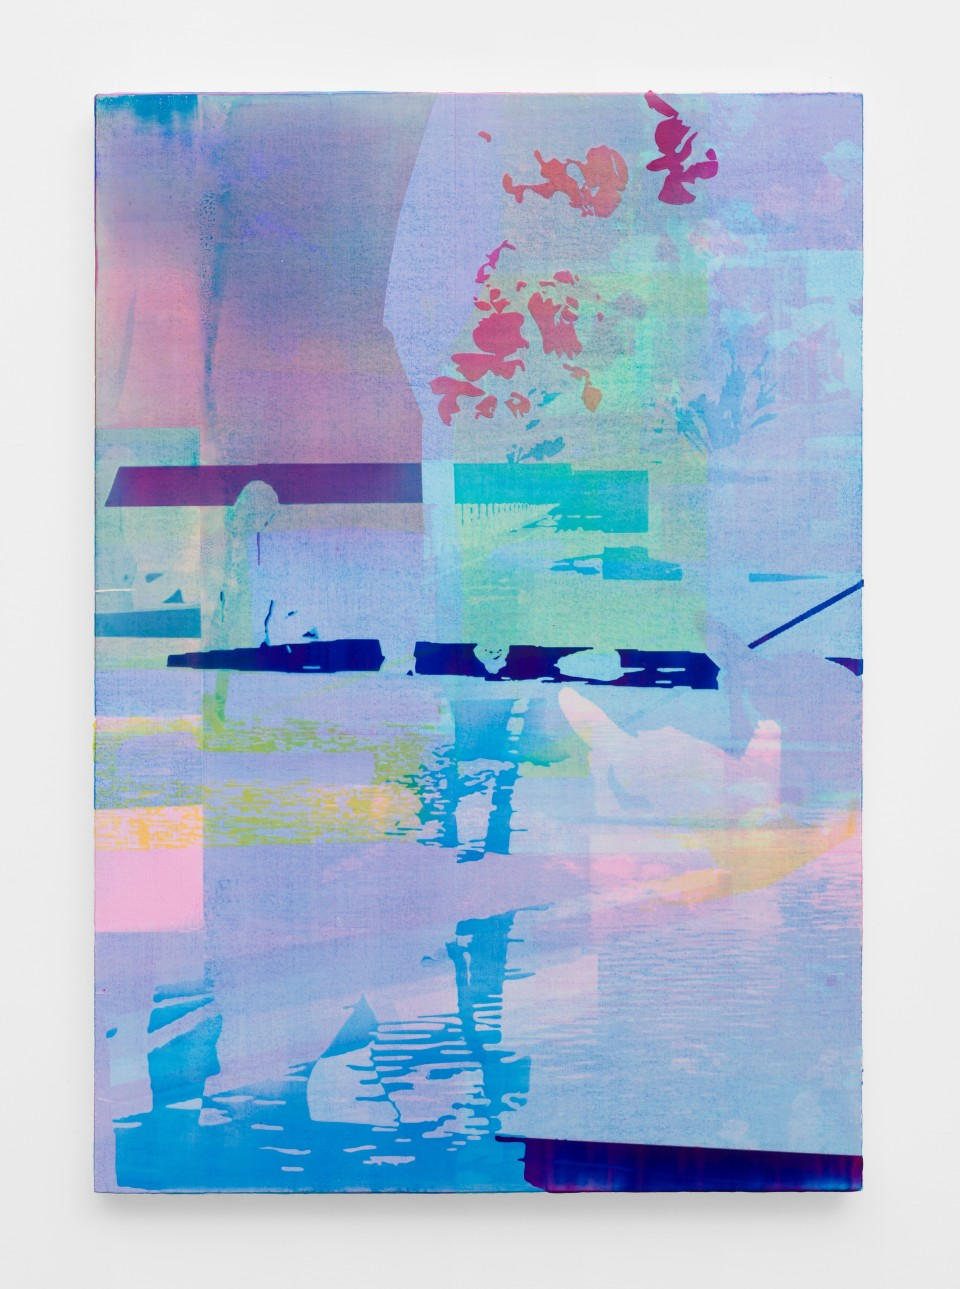 Image: Zoe Walsh  Moondark to dawn, 2020  signed and dated verso  acrylic on canvas-wrapped panel  28 1/2 x 20 inches (72.4 x 50.8 cm)